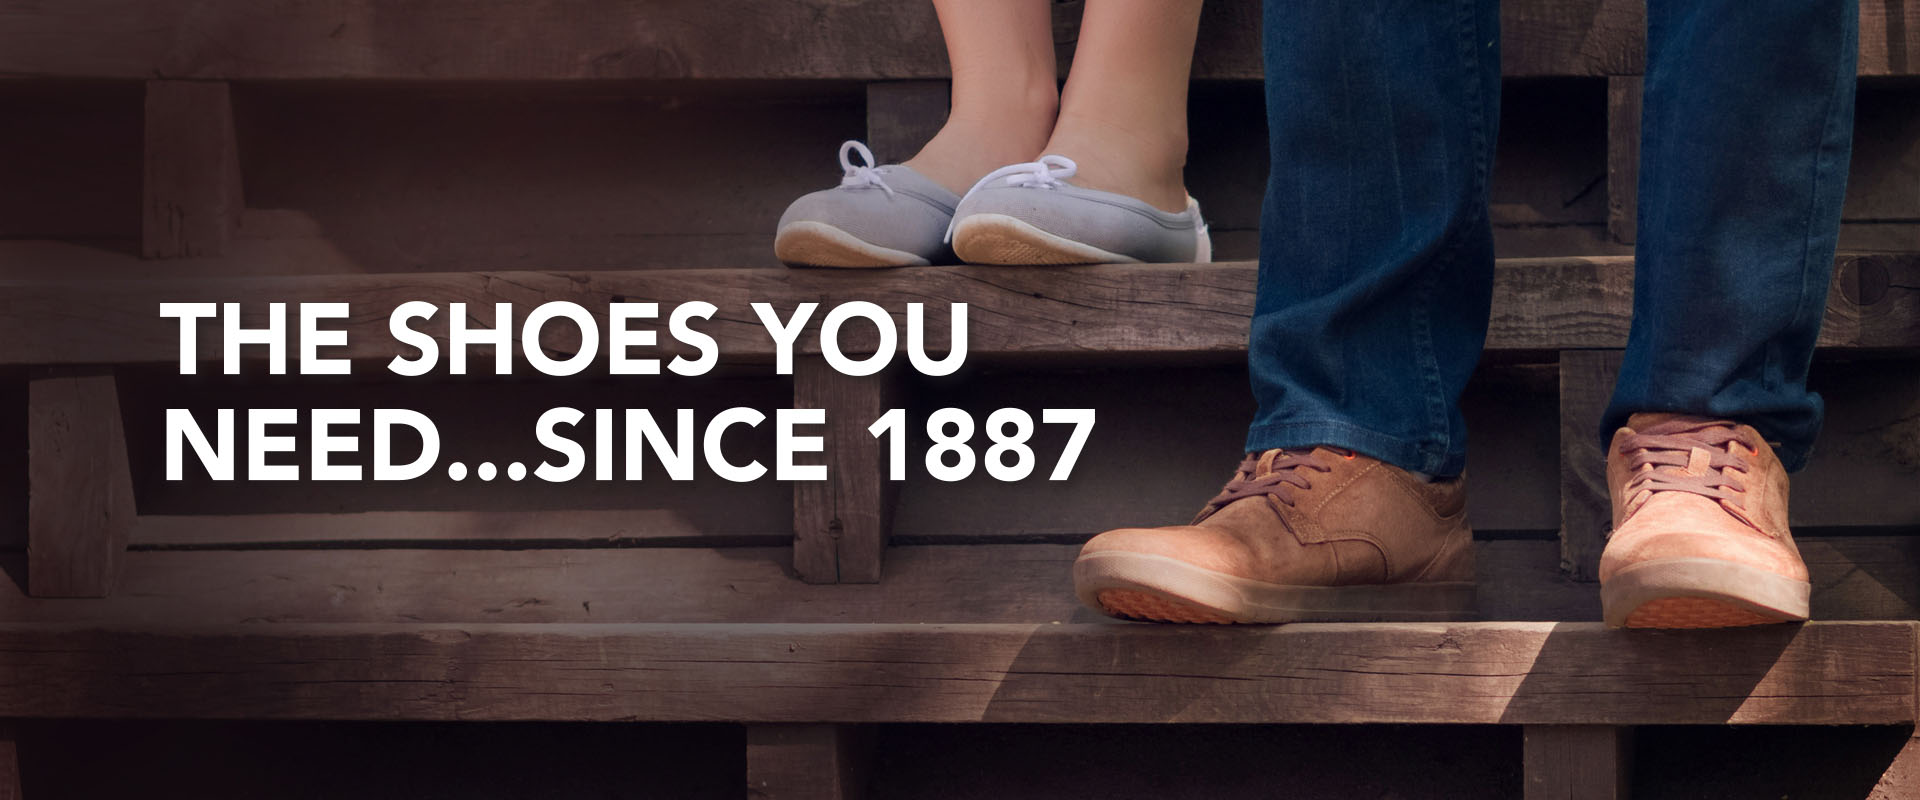 Holmes Shoes - the shoes you need... since 1887